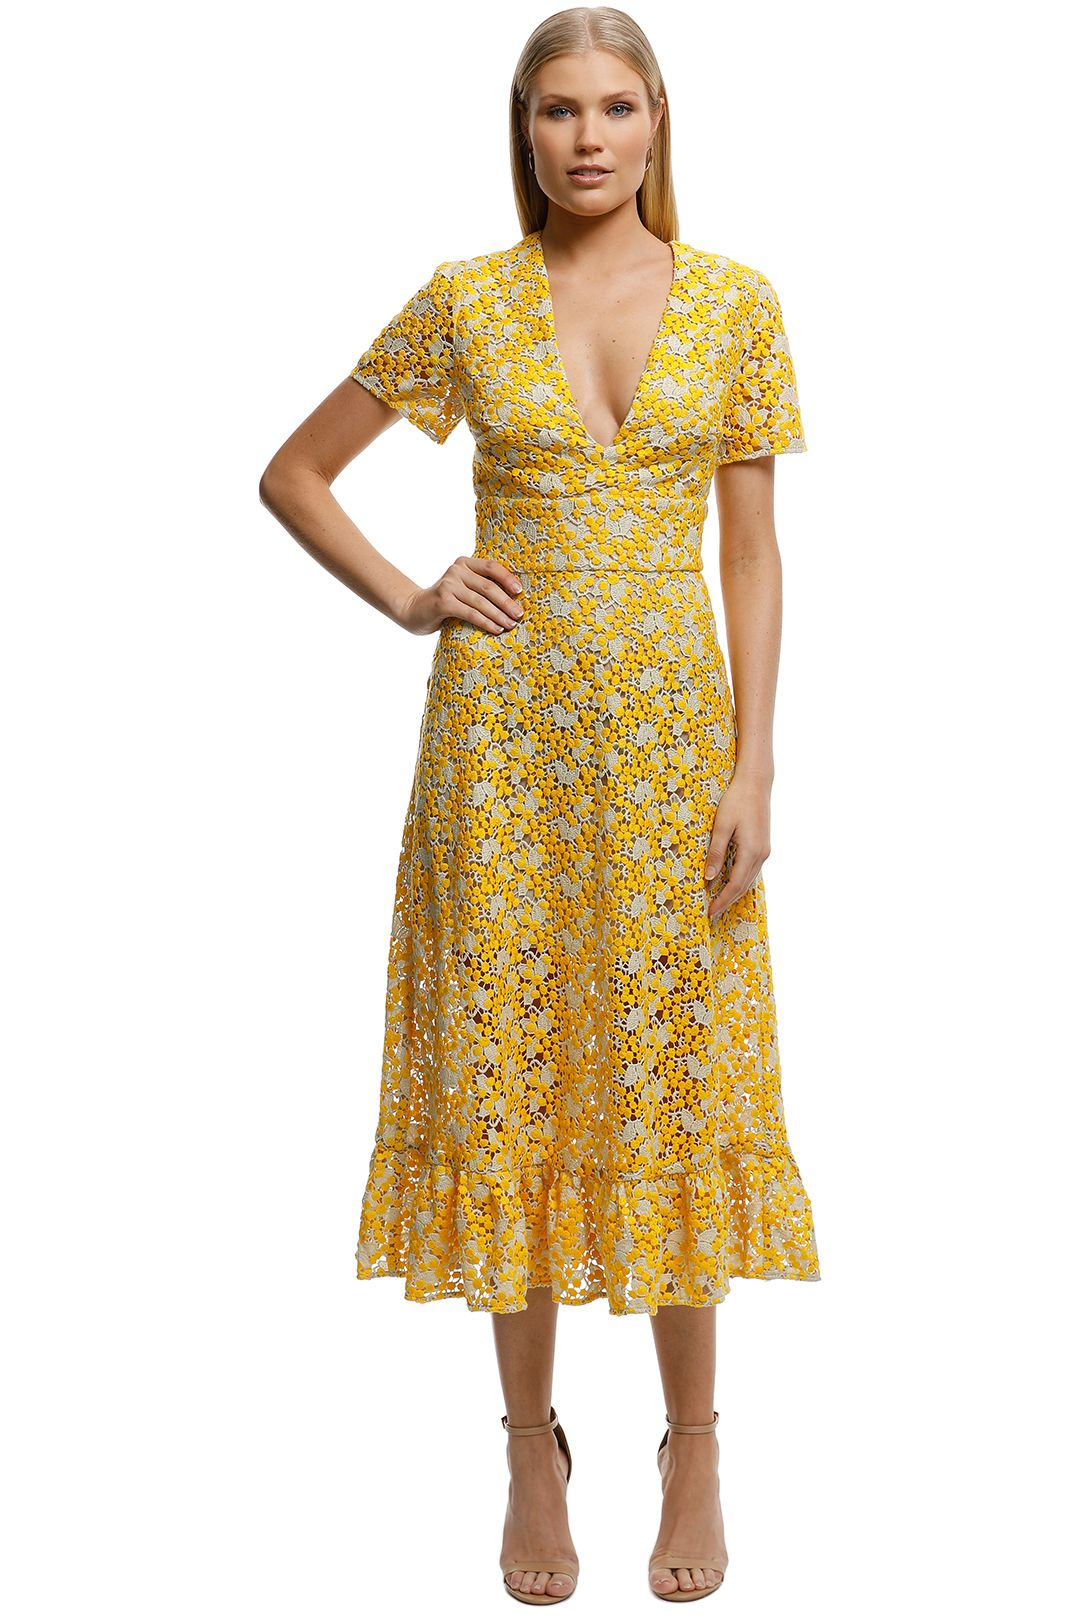 Talulah-Sun Dreams Midi Dress-Yellow-Front